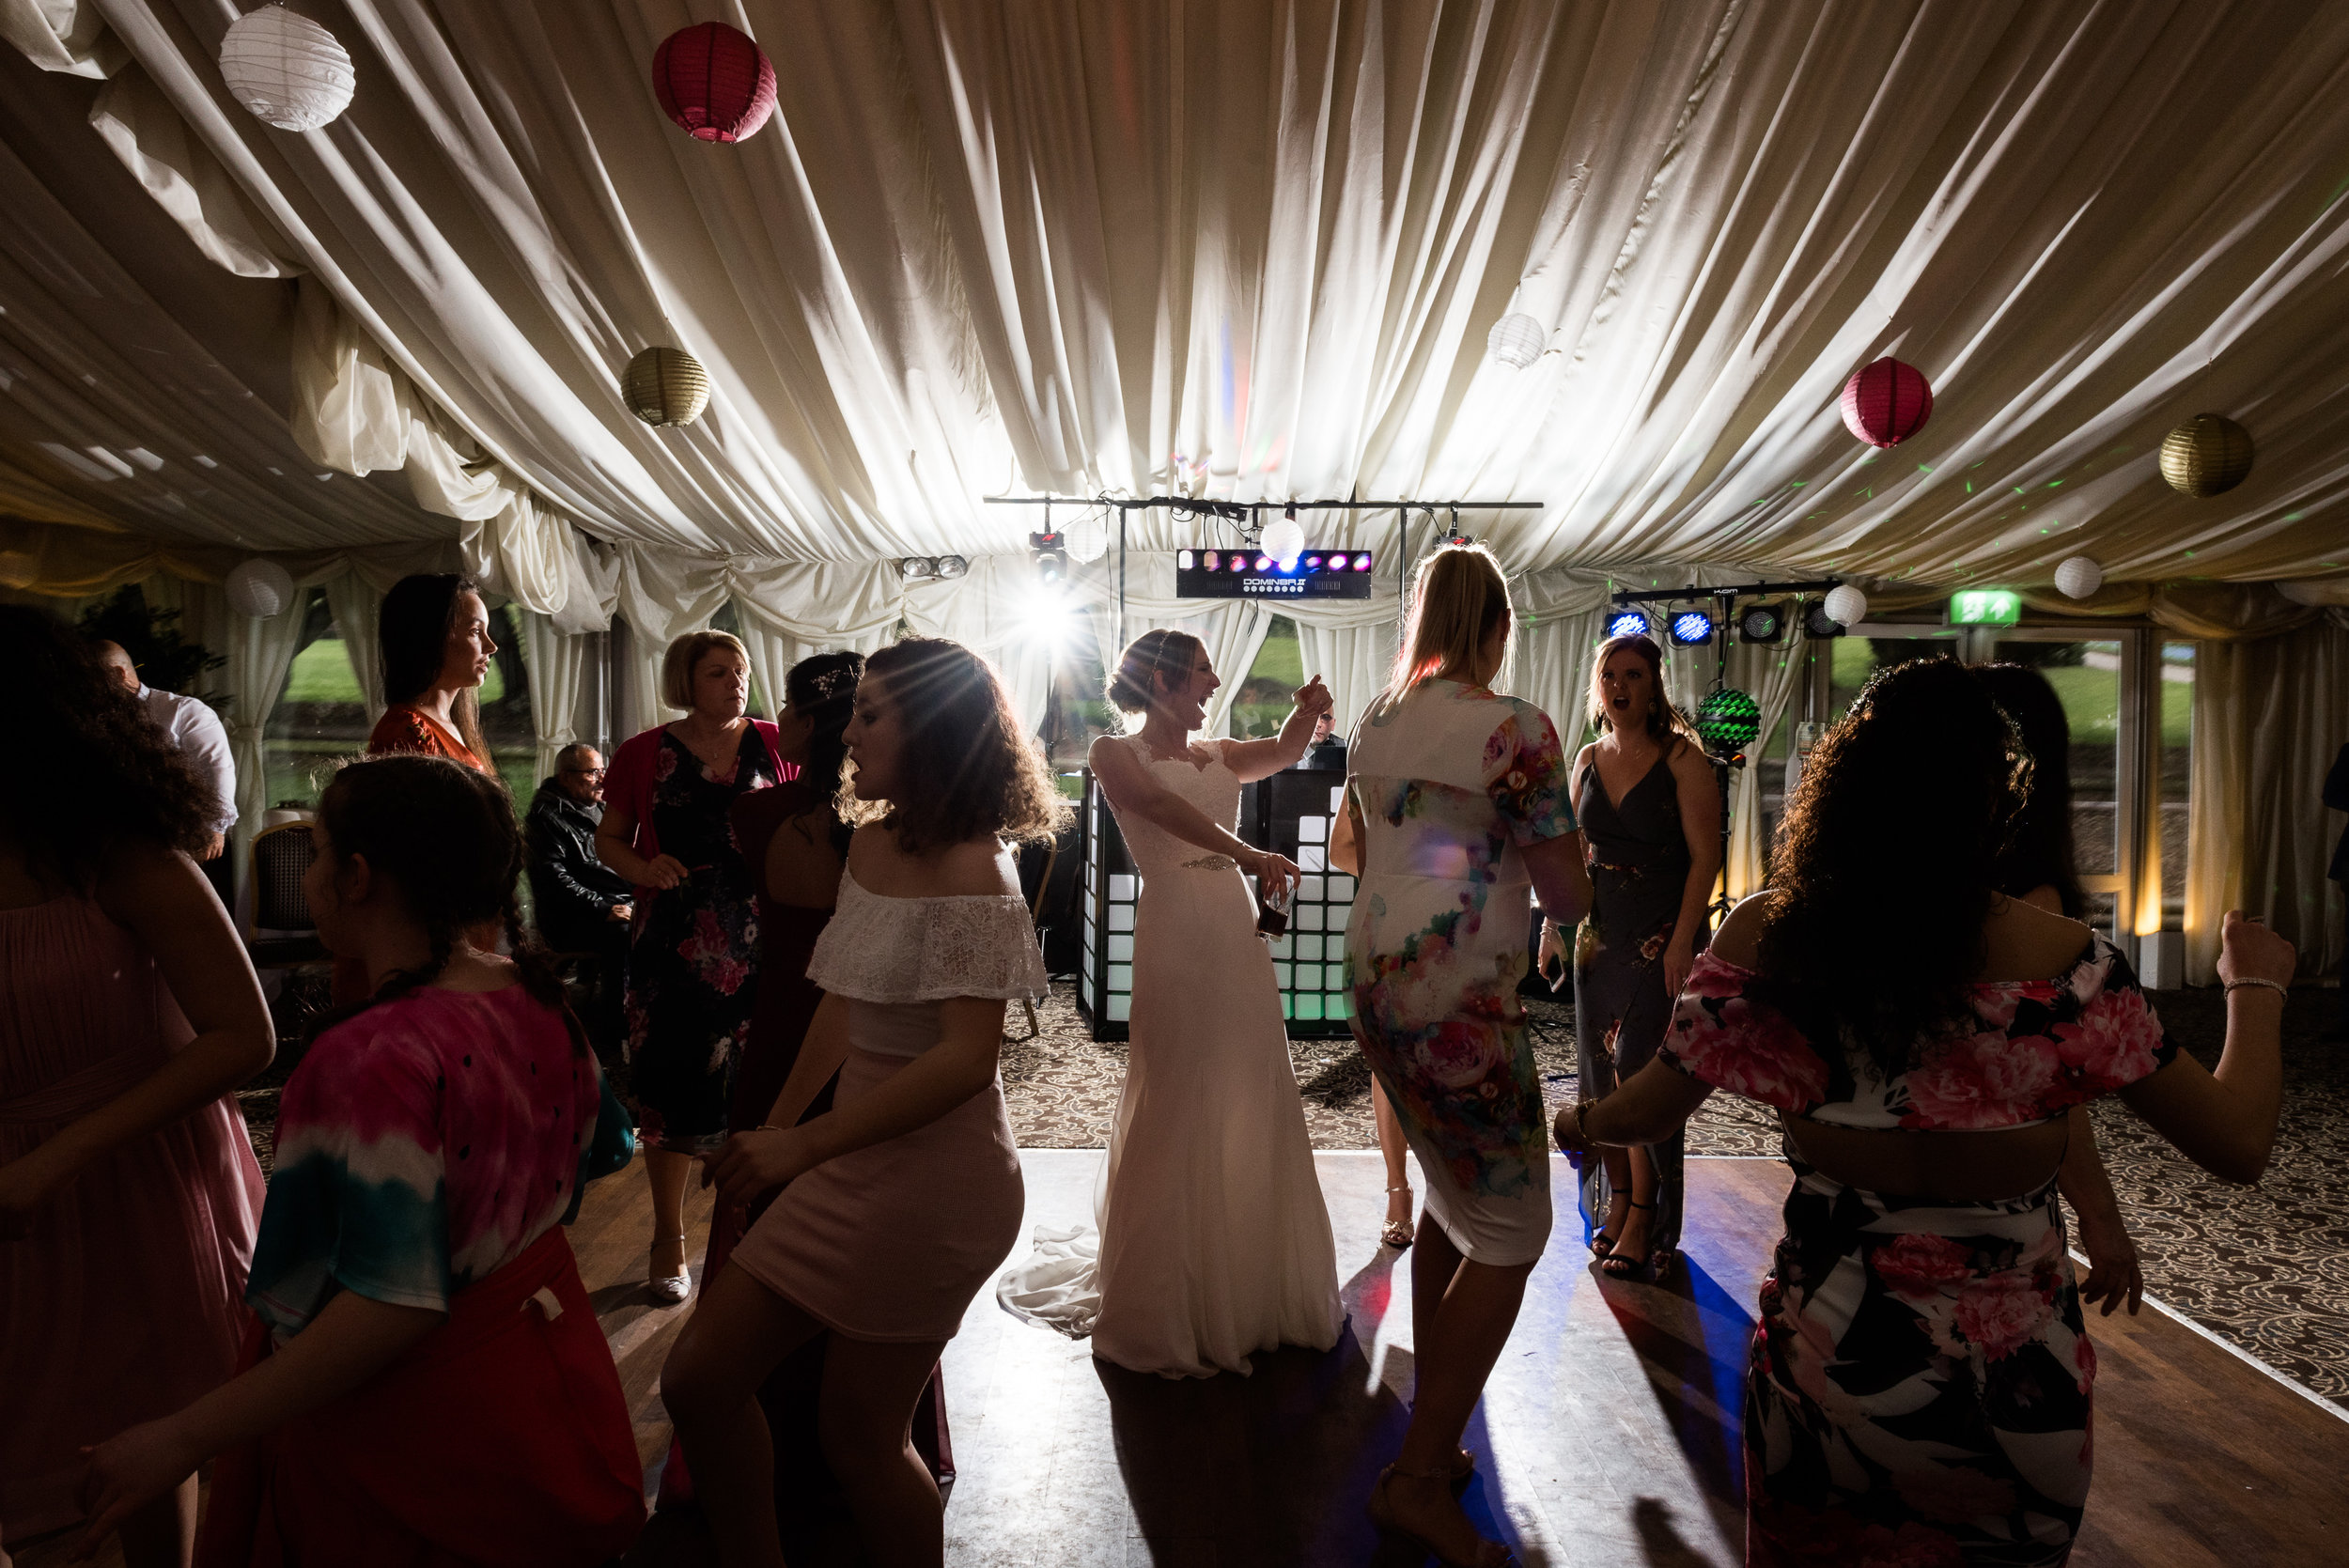 Birmingham Documentary Wedding Photography at New Hall, Sutton Coldfield Turkish Red Candid Reportage - Jenny Harper-71.jpg